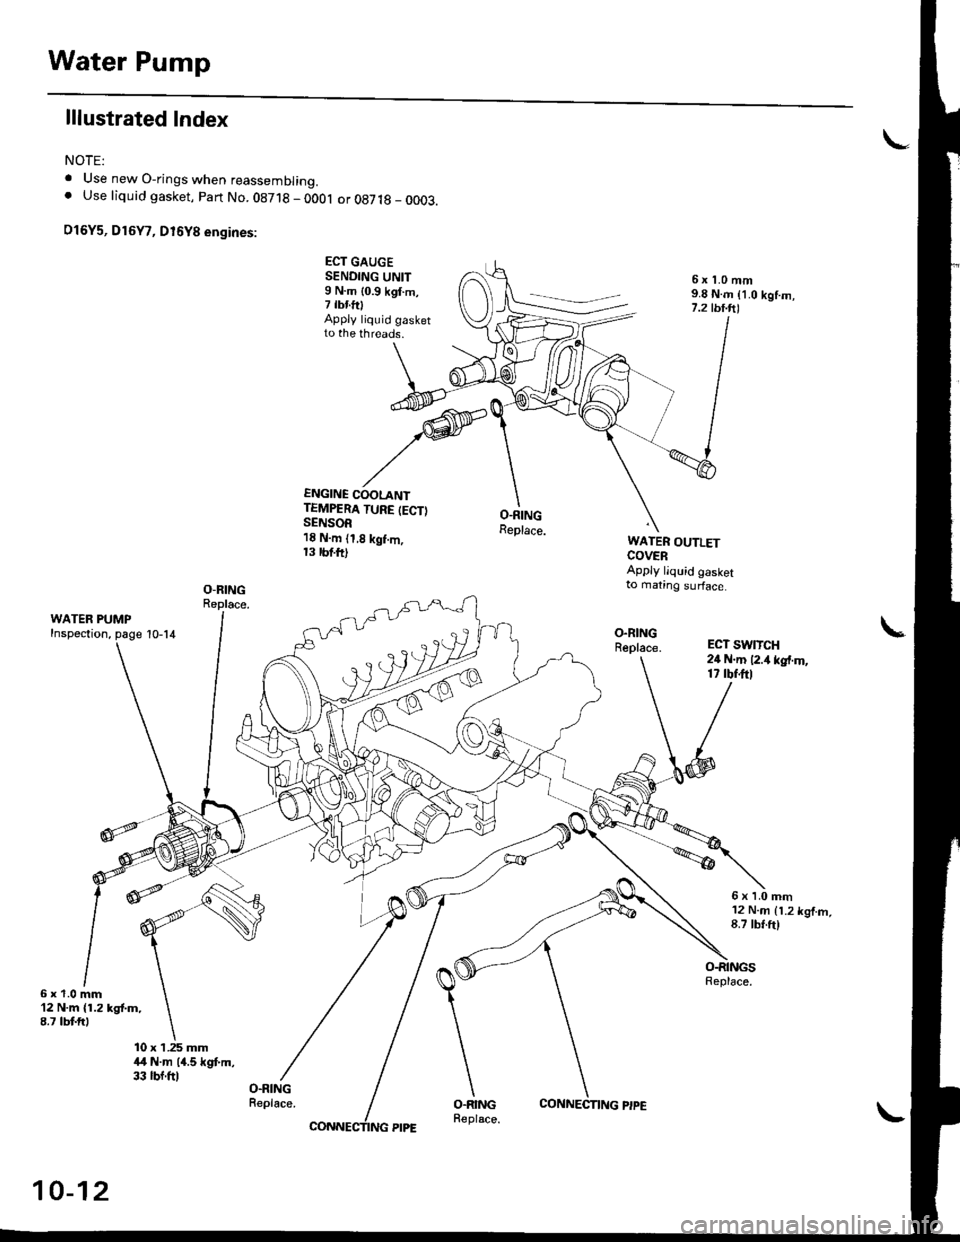 HONDA CIVIC 1997 6.G Workshop Manual, Page 267